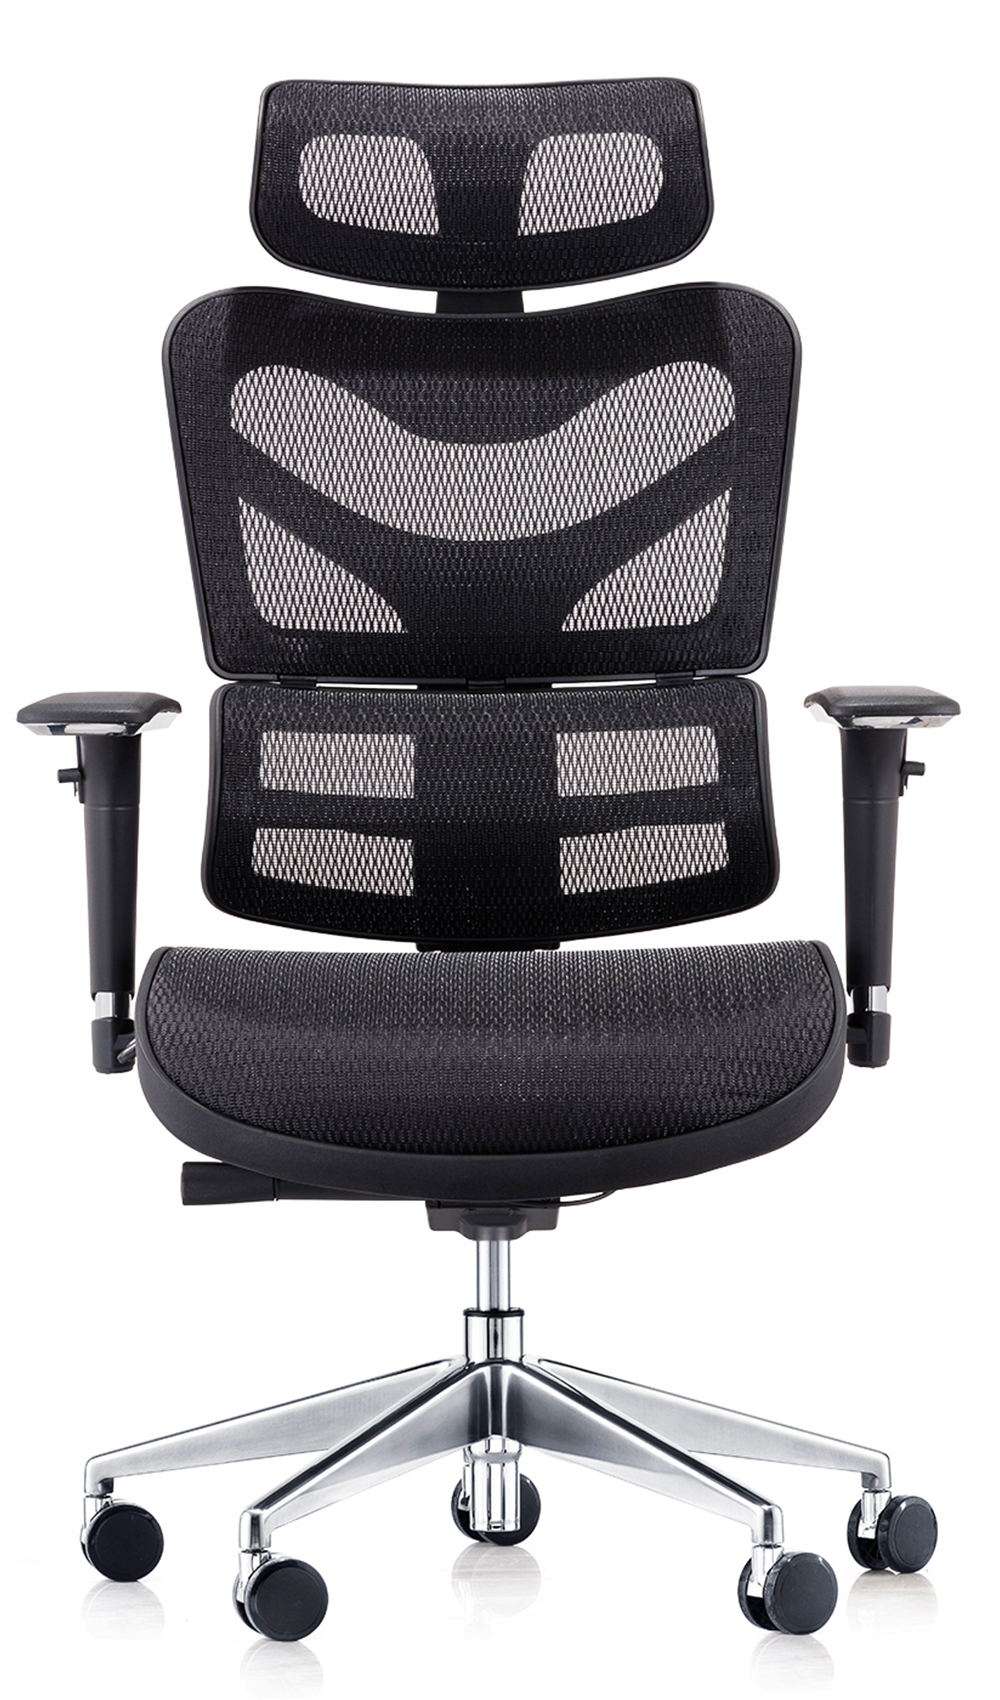 Dorsum Executive Mesh Office Chair